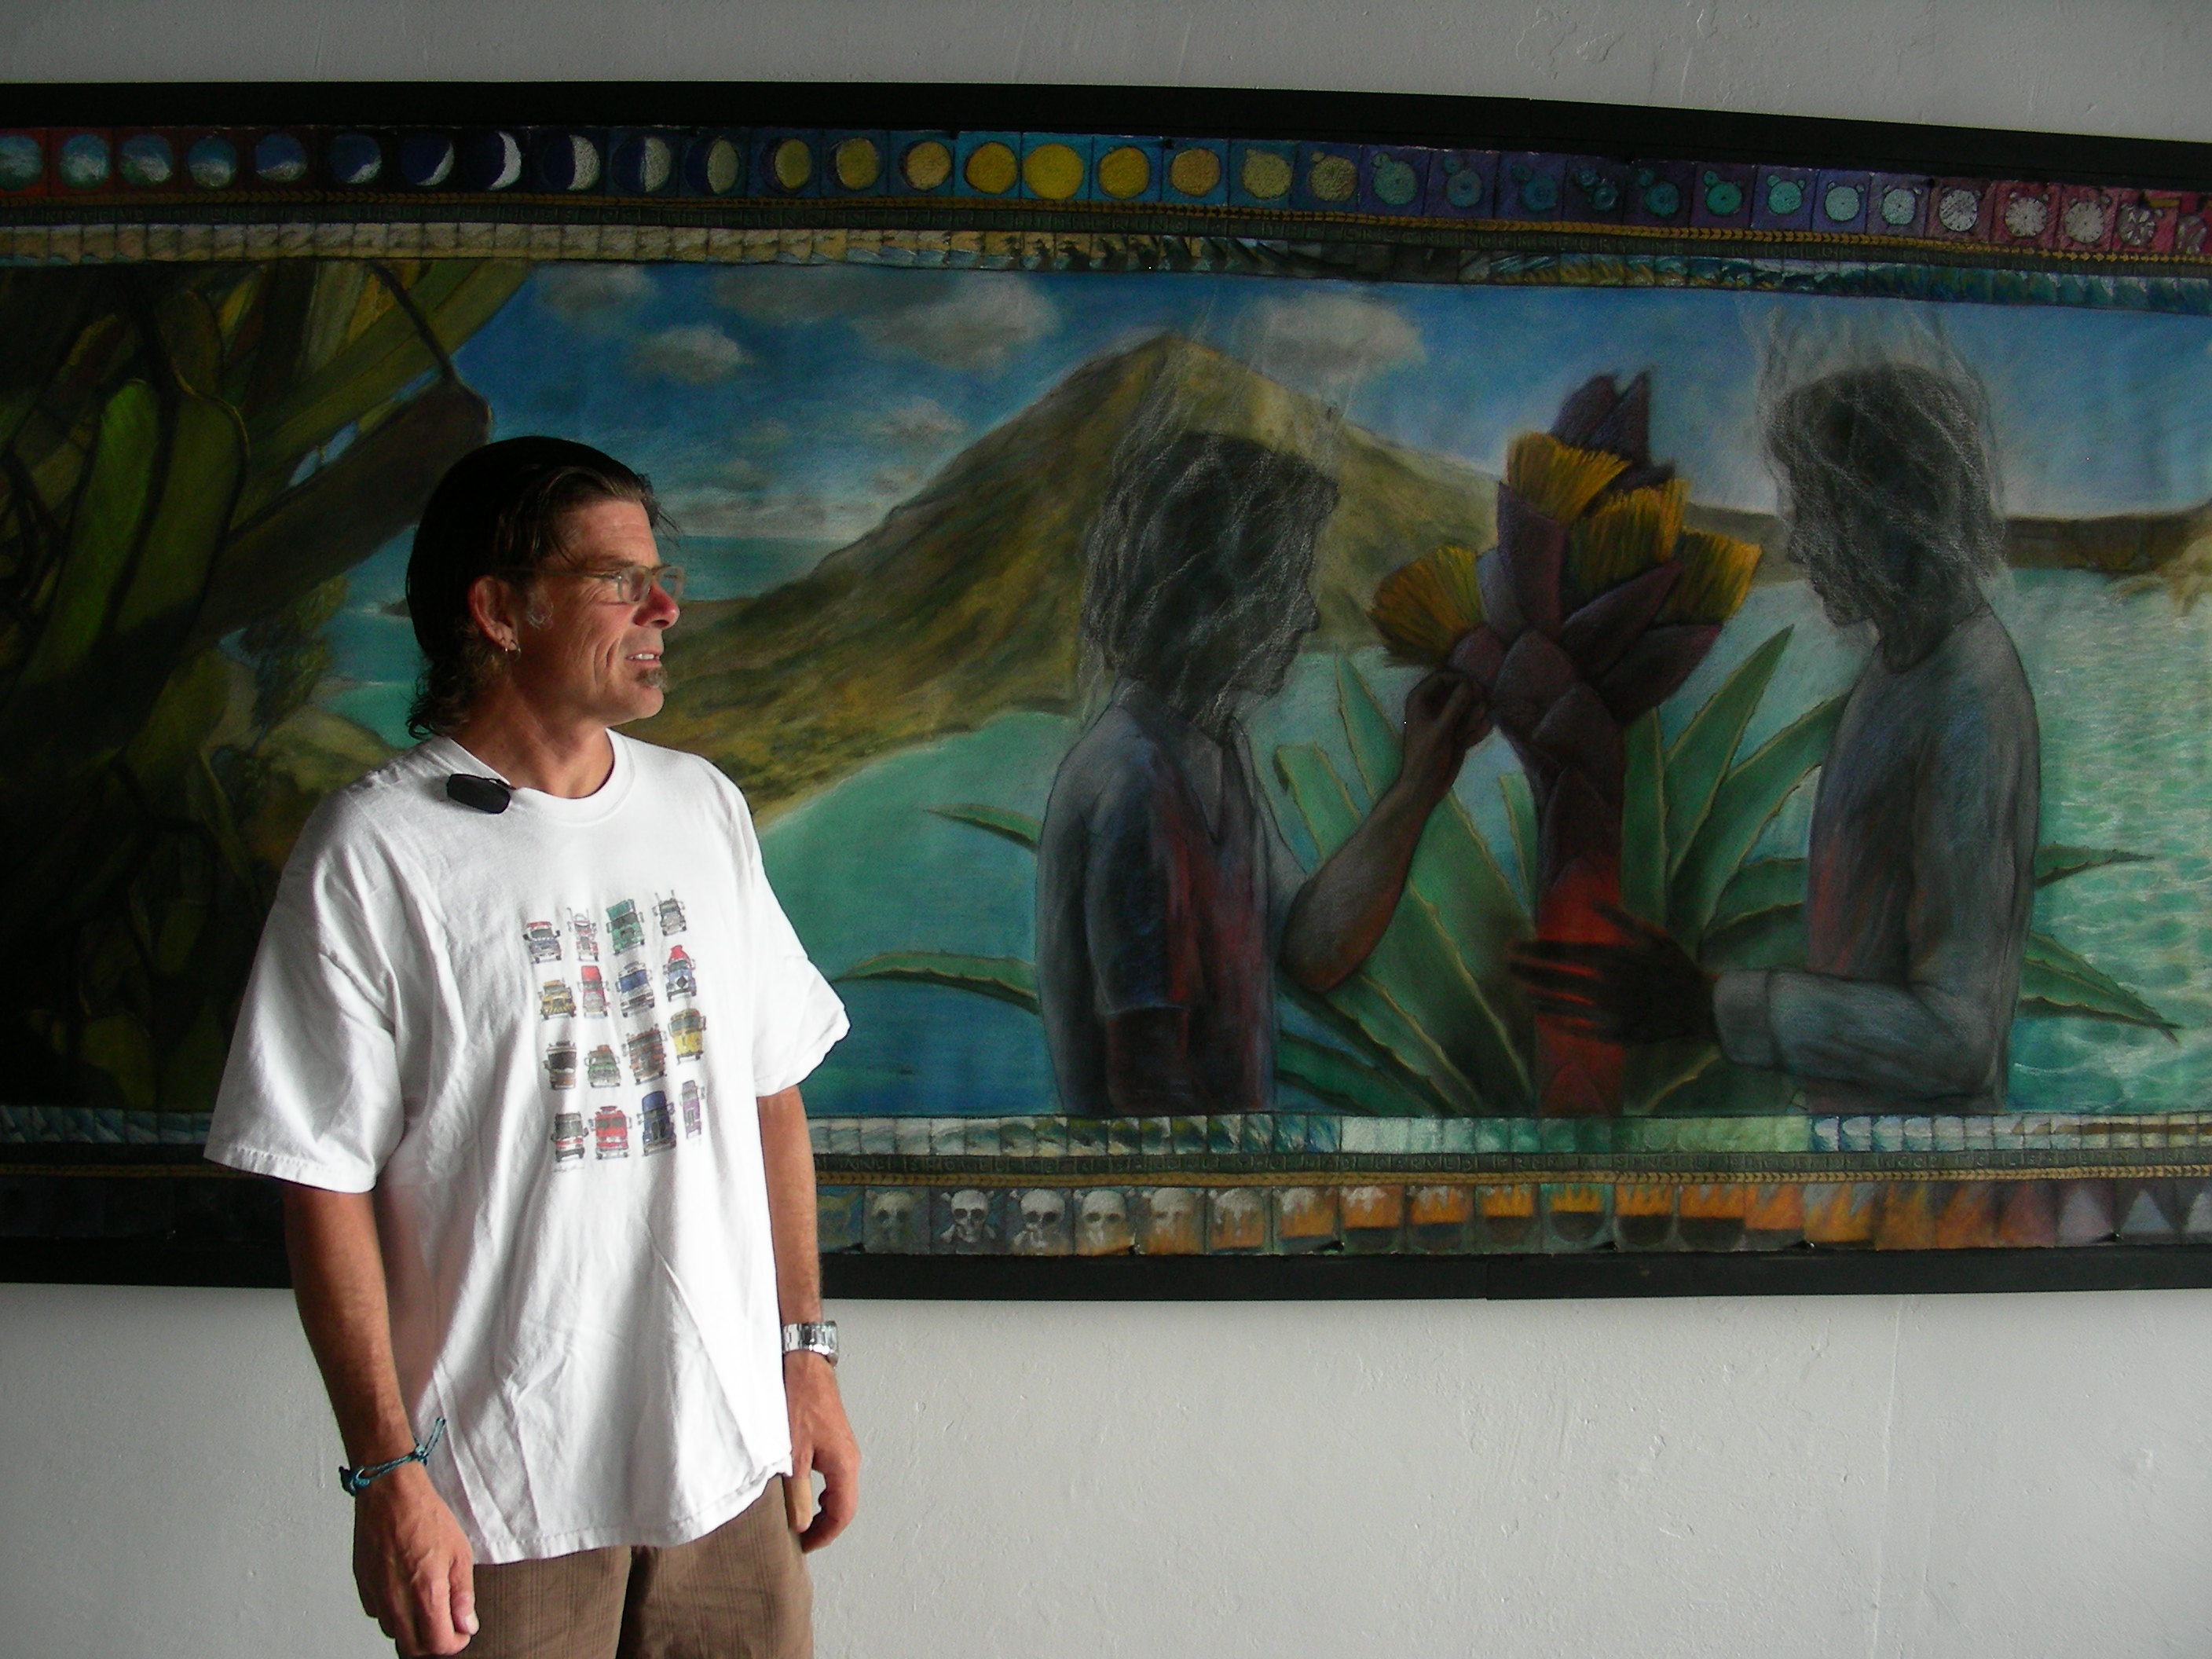 Life Cycles: Artist Steve Shriver took a tumble, and it's an arduous climb back up